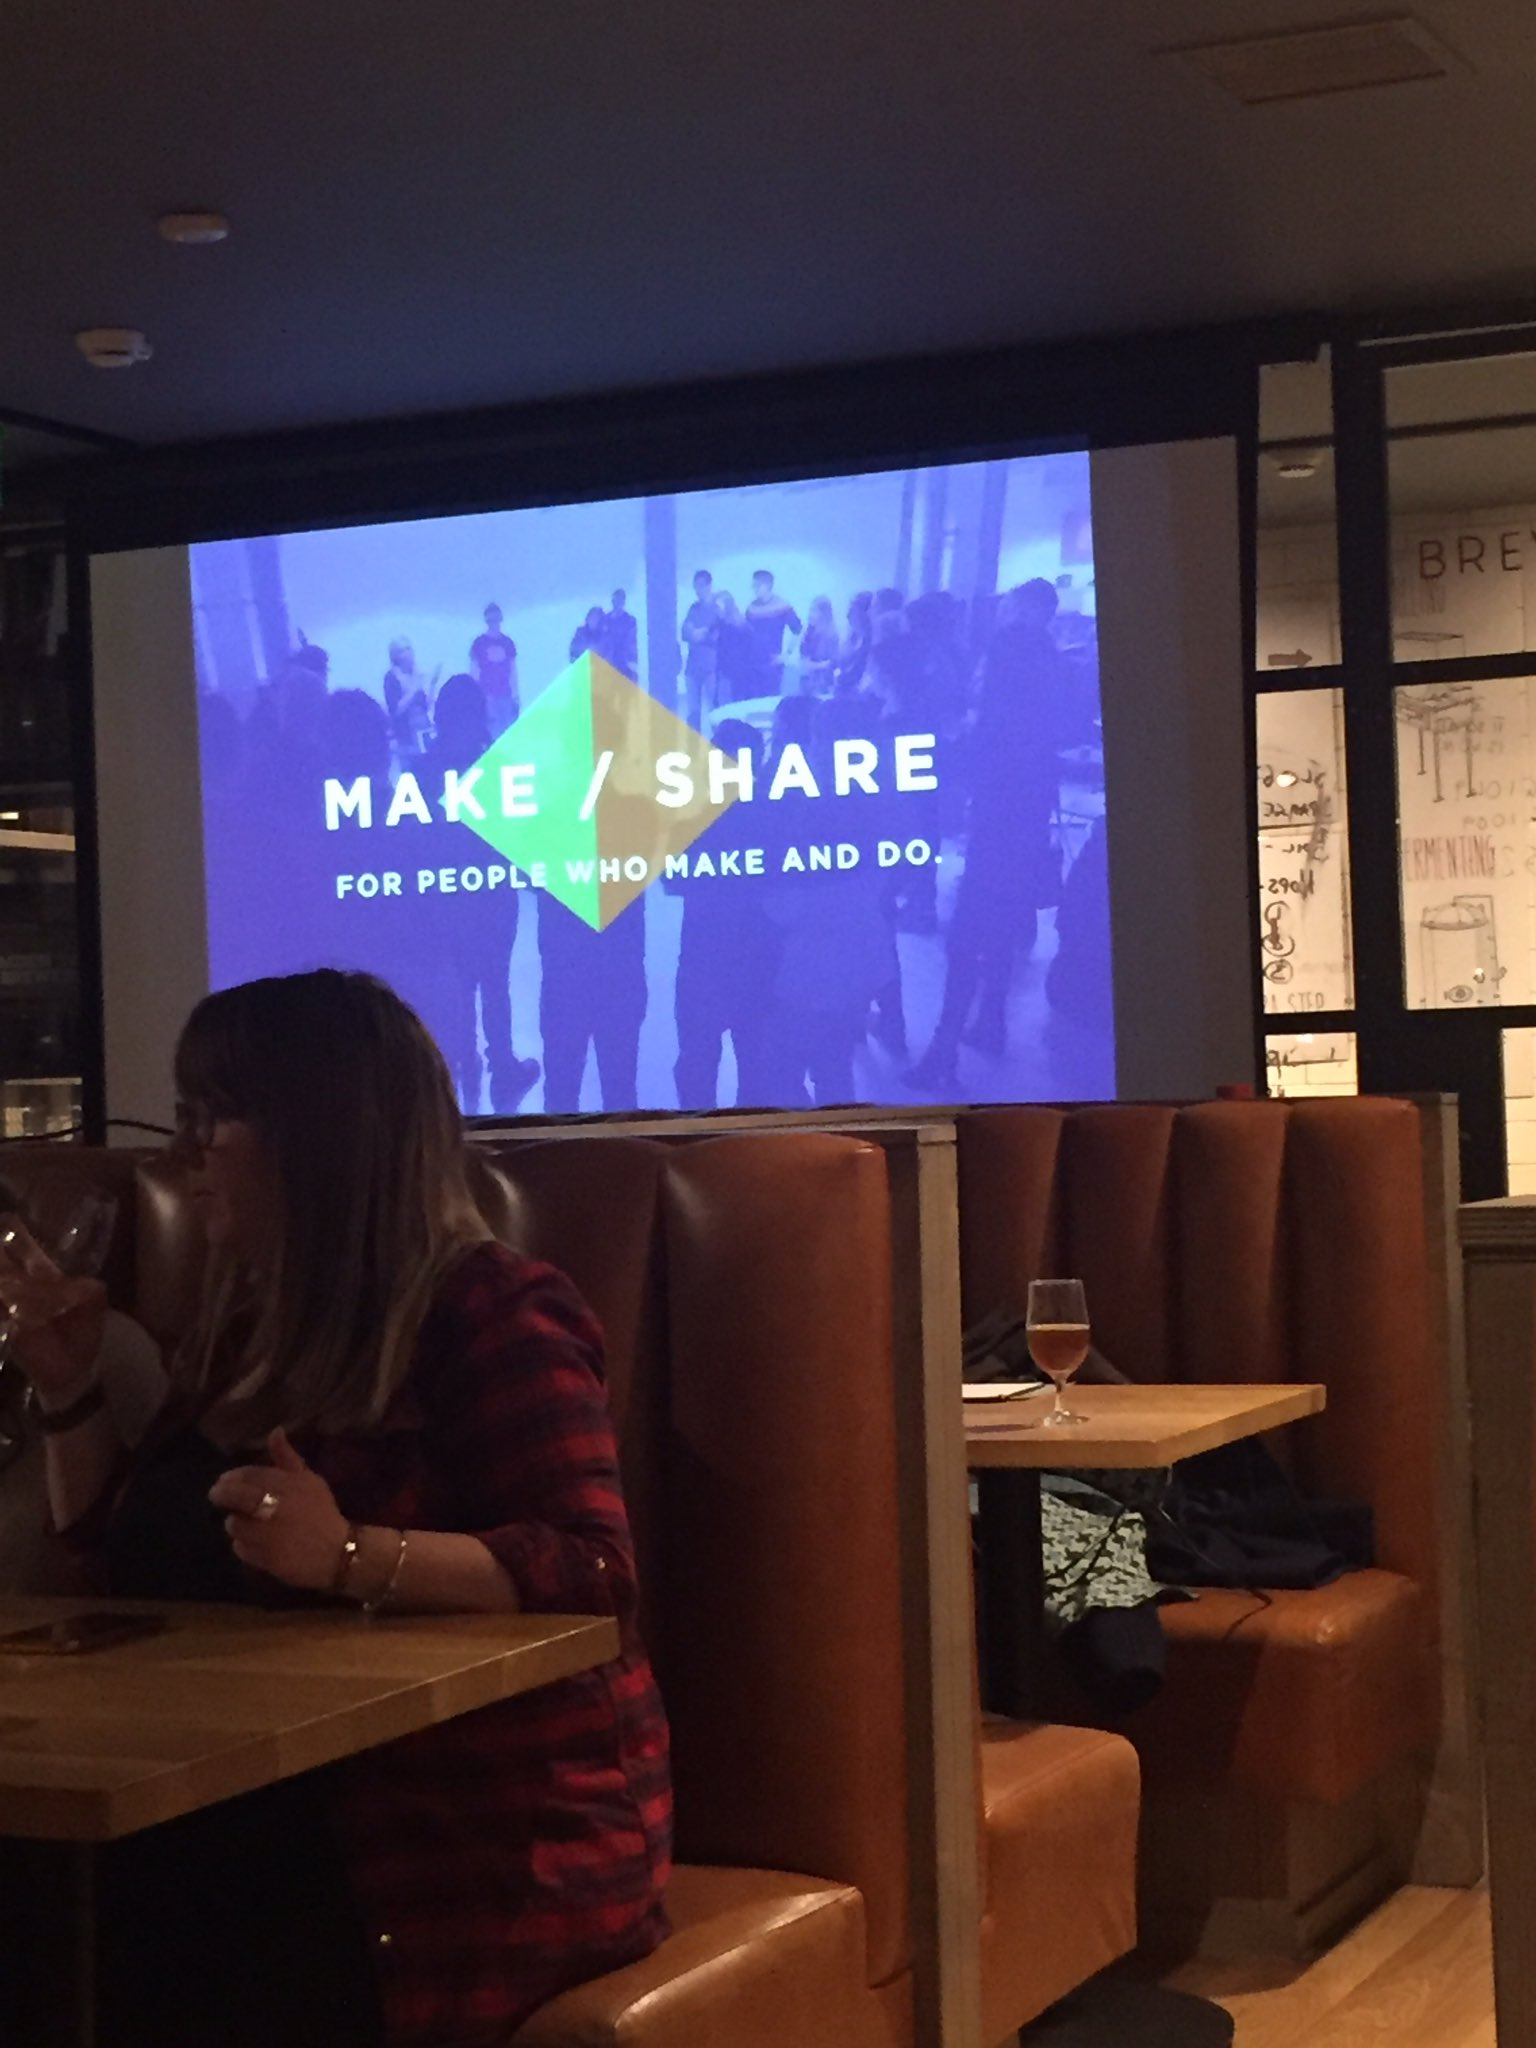 Third time at #makeshare in the beer kitchen! Still sticking to the Diet Coke, it's gonna be interesting! #cbdsn https://t.co/mnqJVse6P3